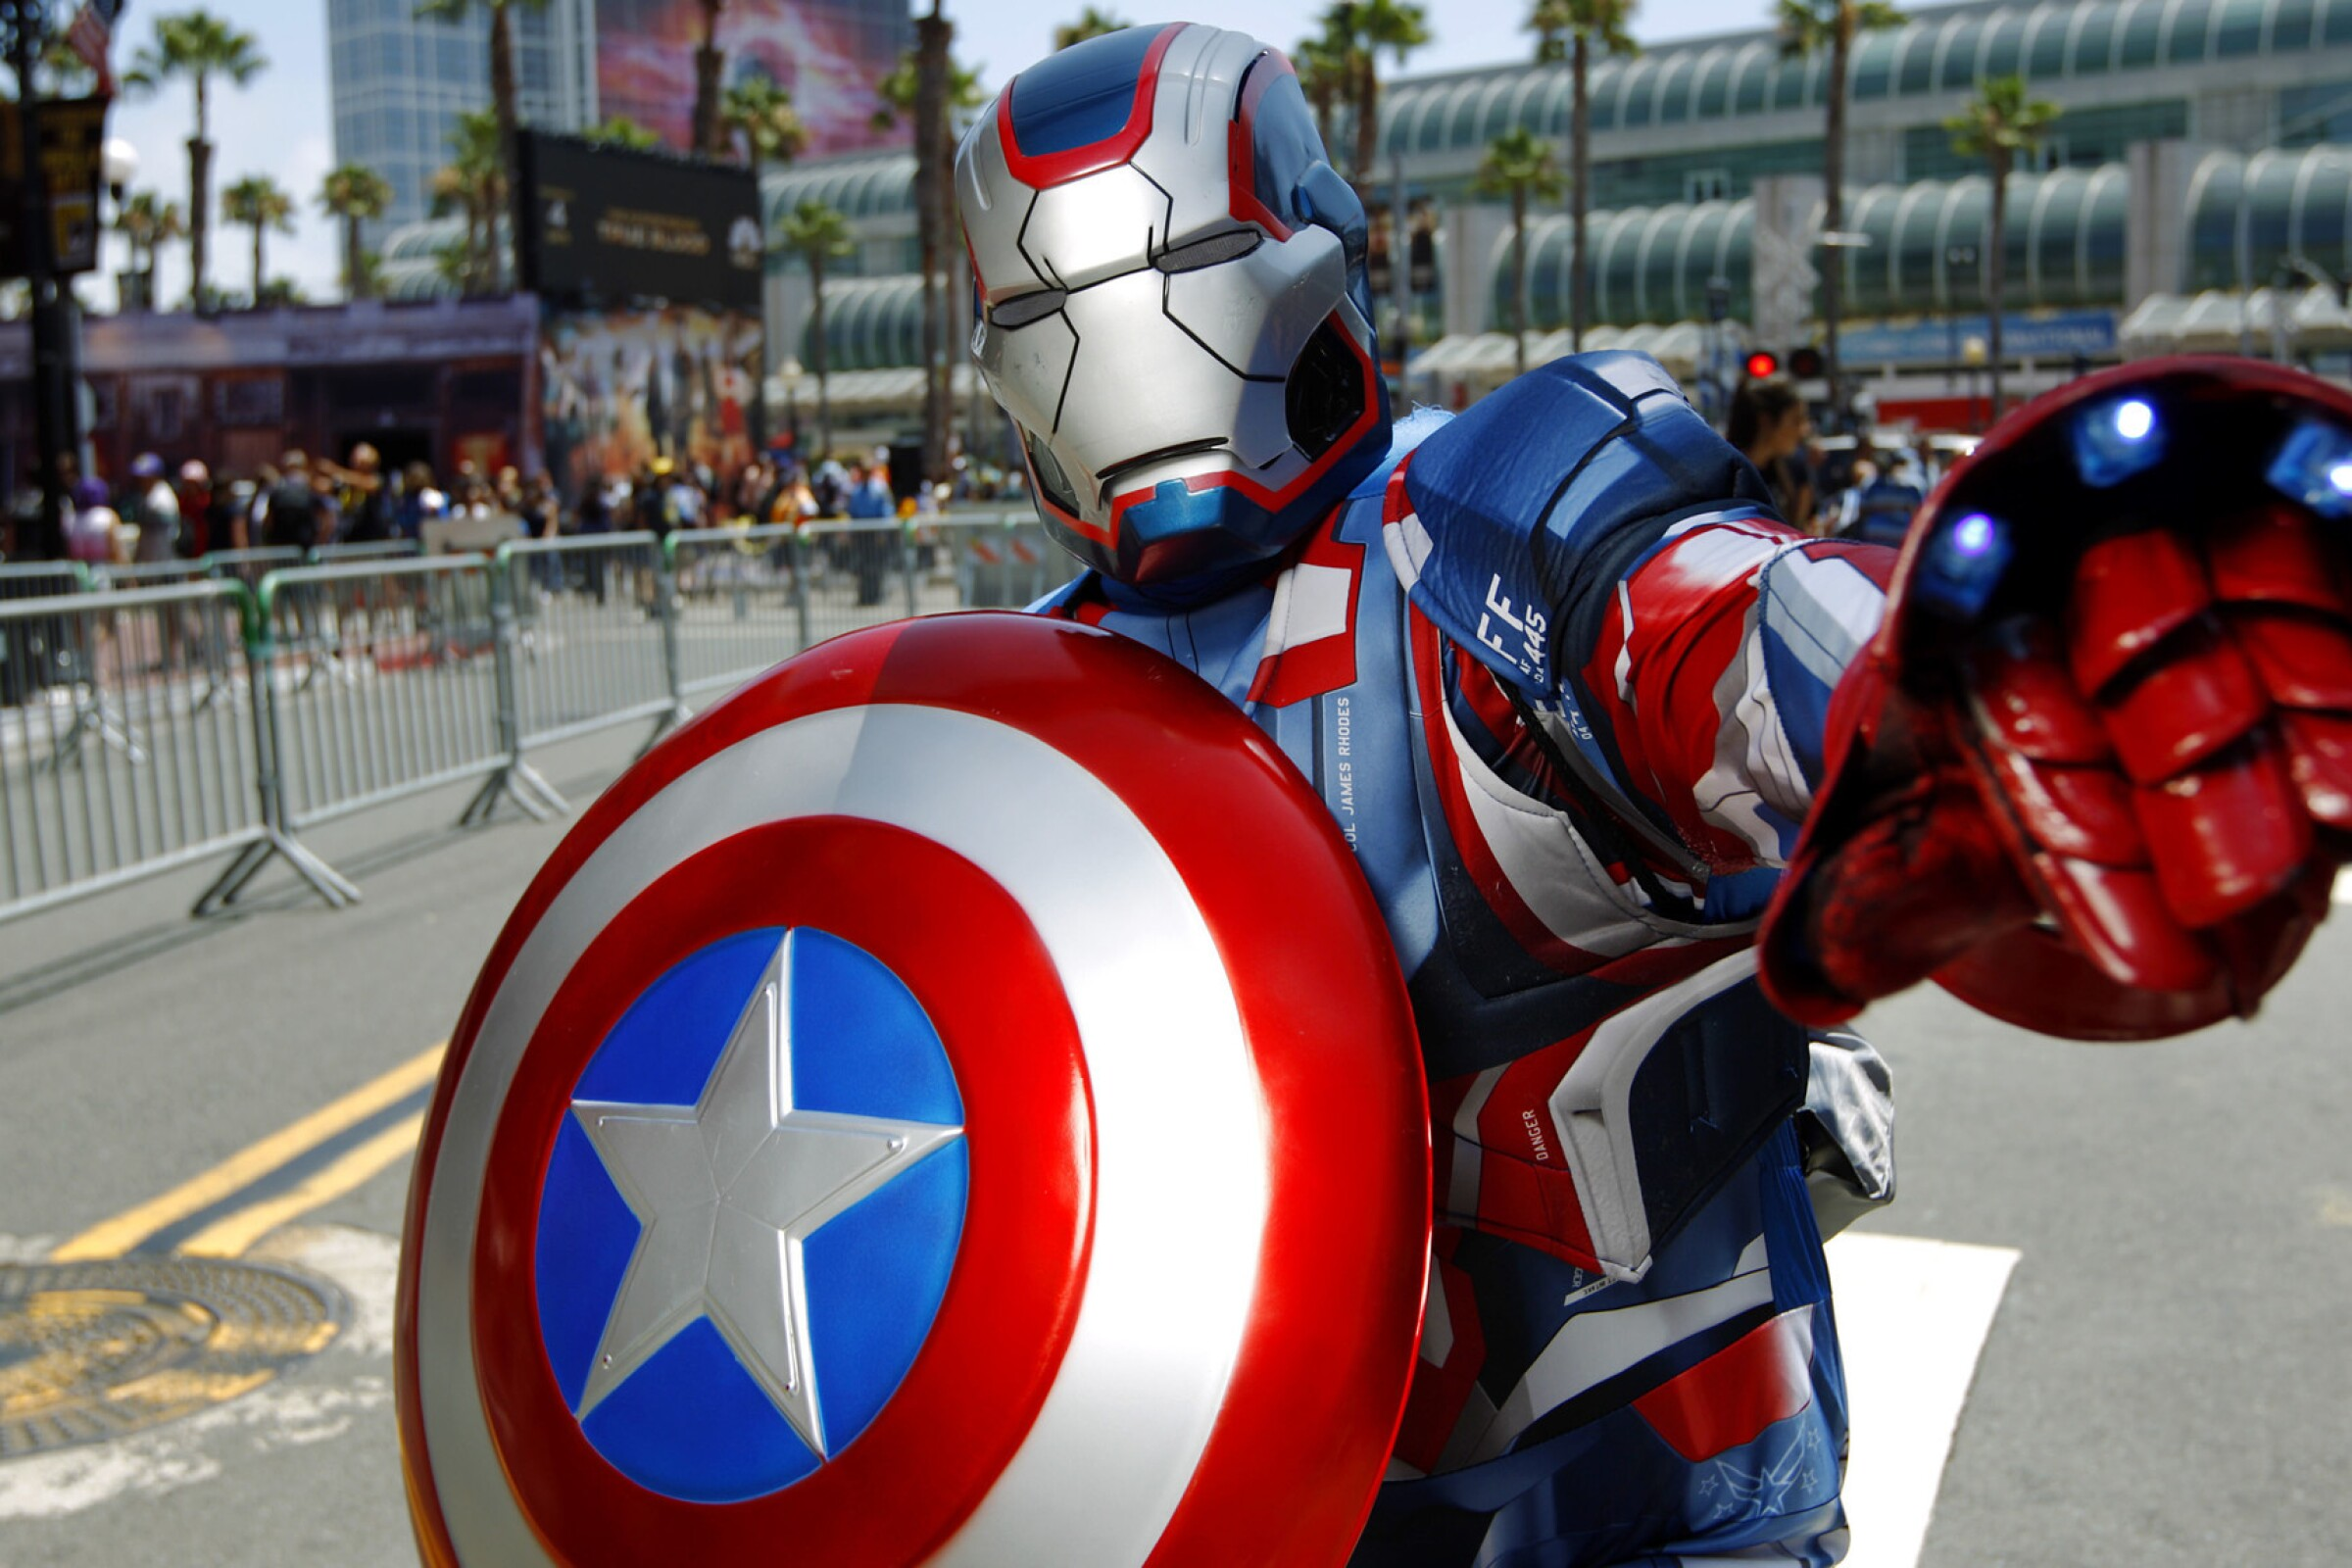 Comic-Con, which turns 50 this year, opens with Preview Night on Wednesday, July 17.